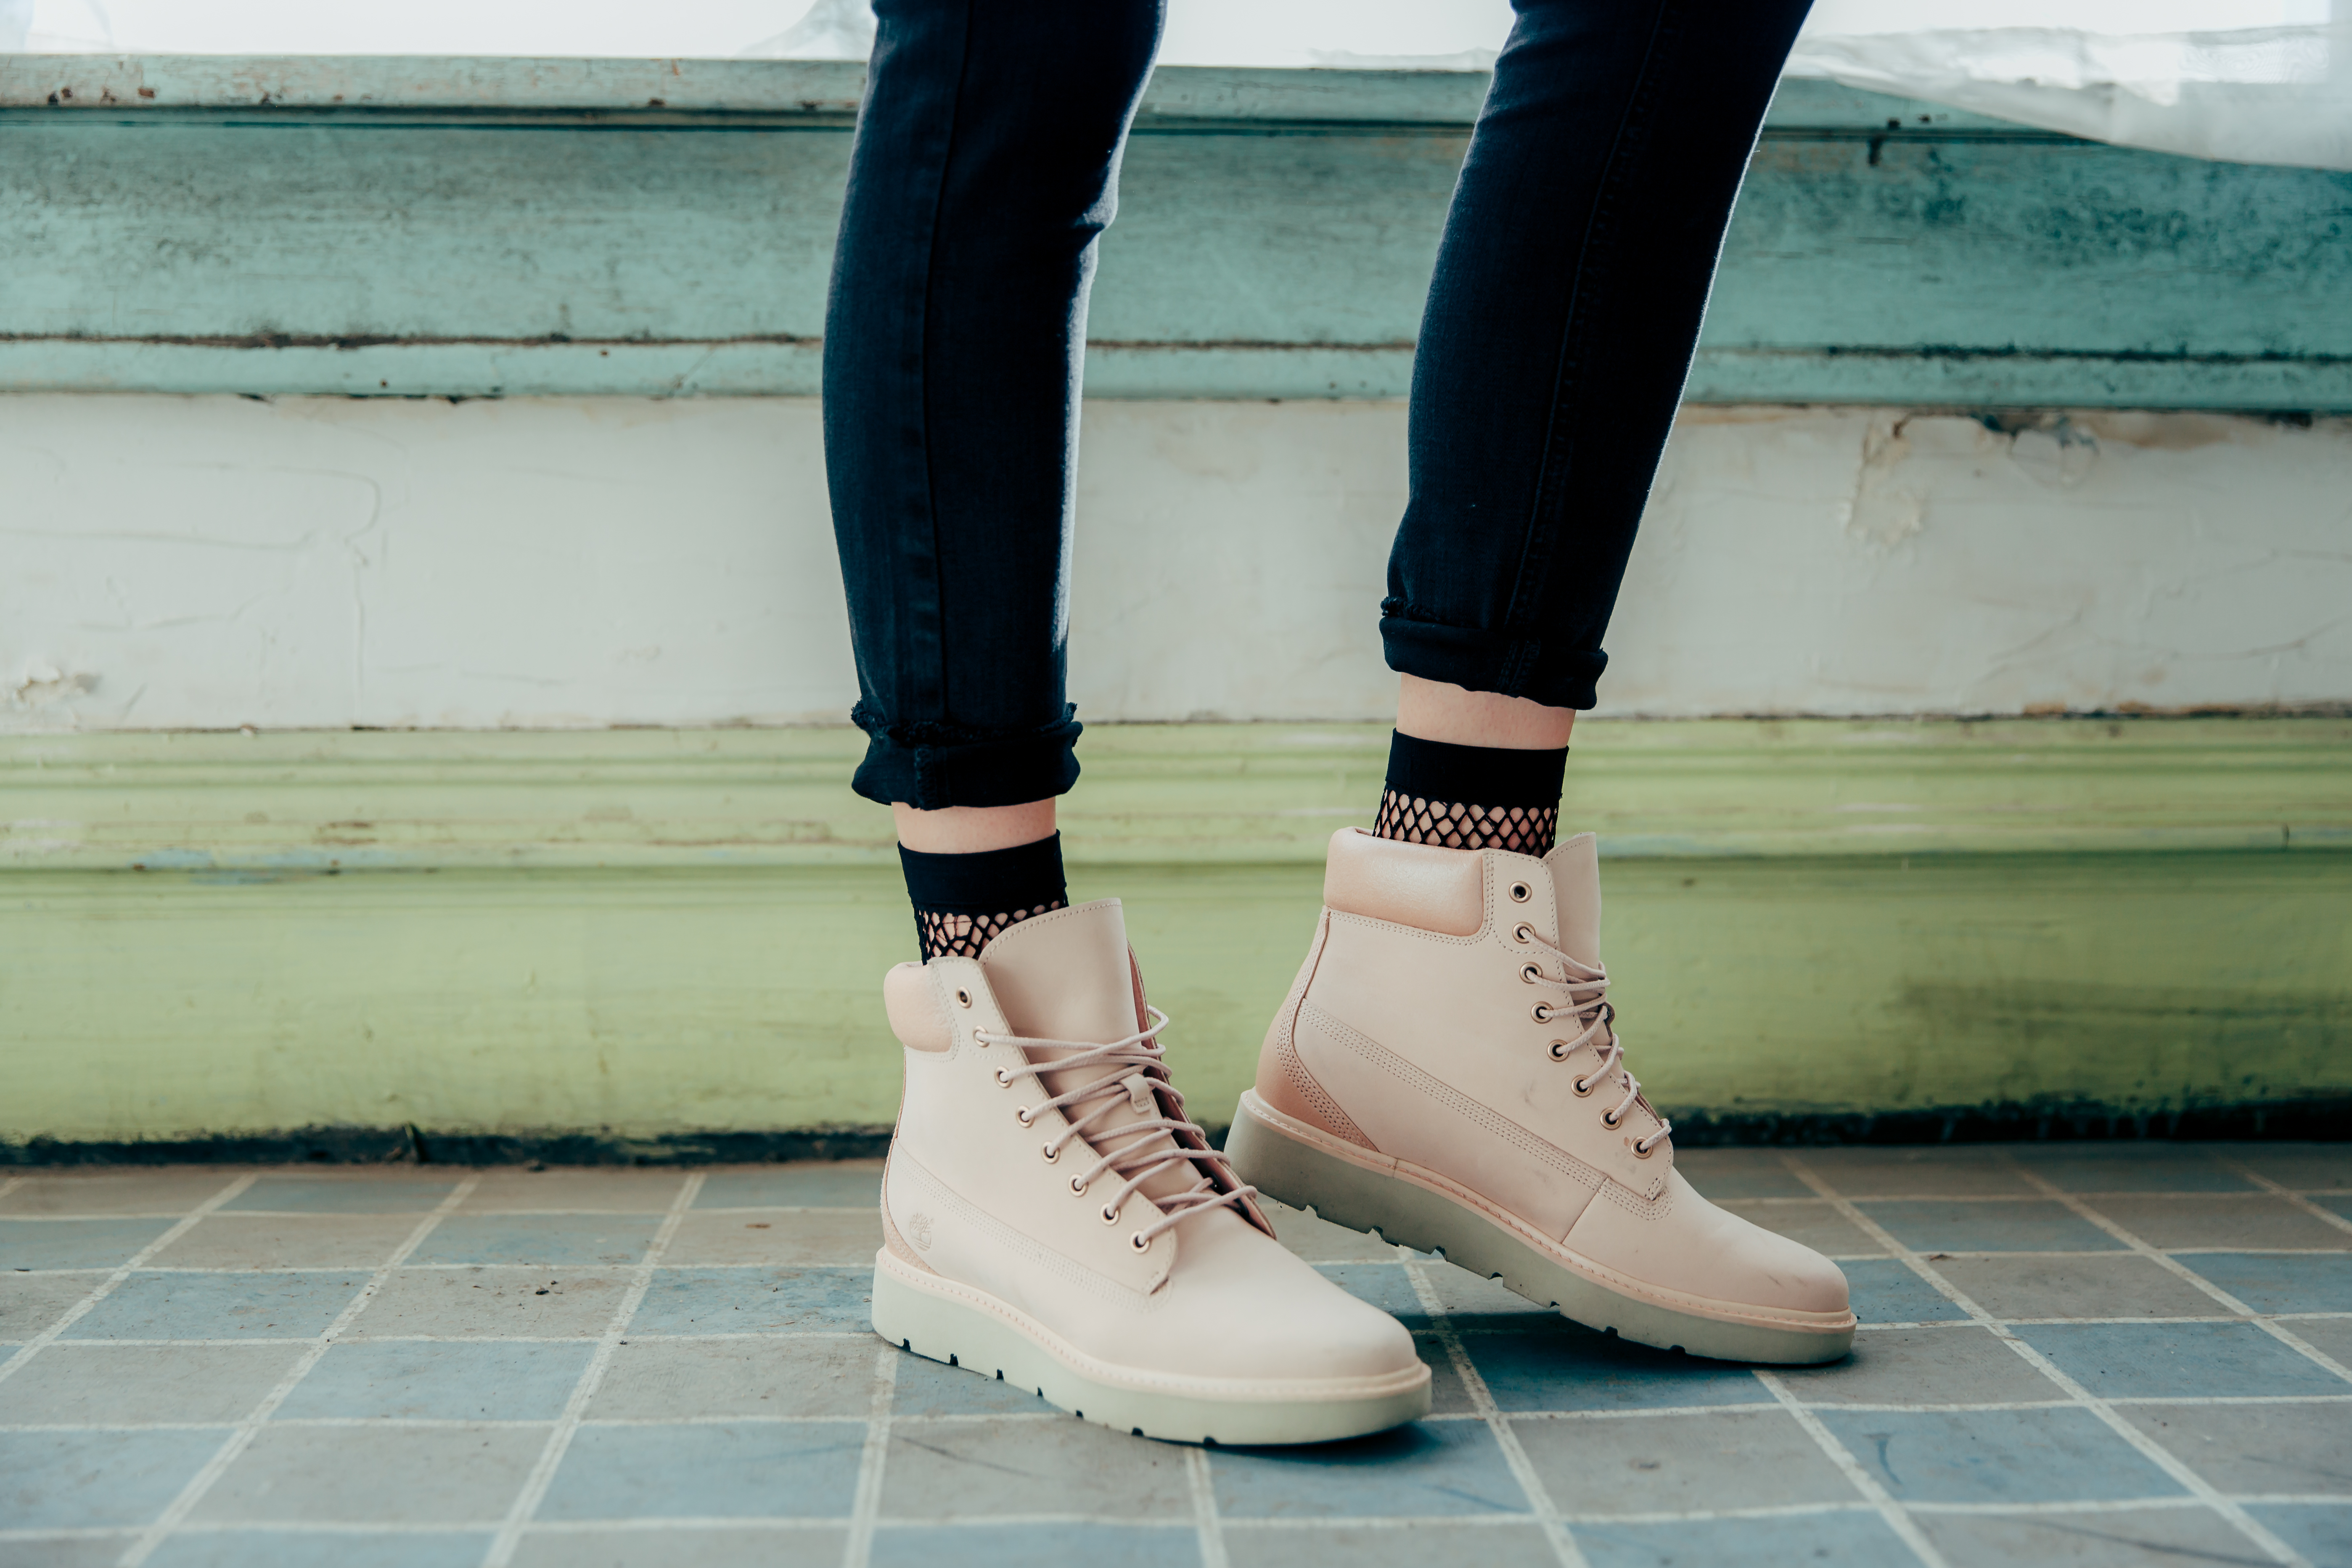 Fishnet Socks with Pink Timberlands | How to Style Socks With Shoes